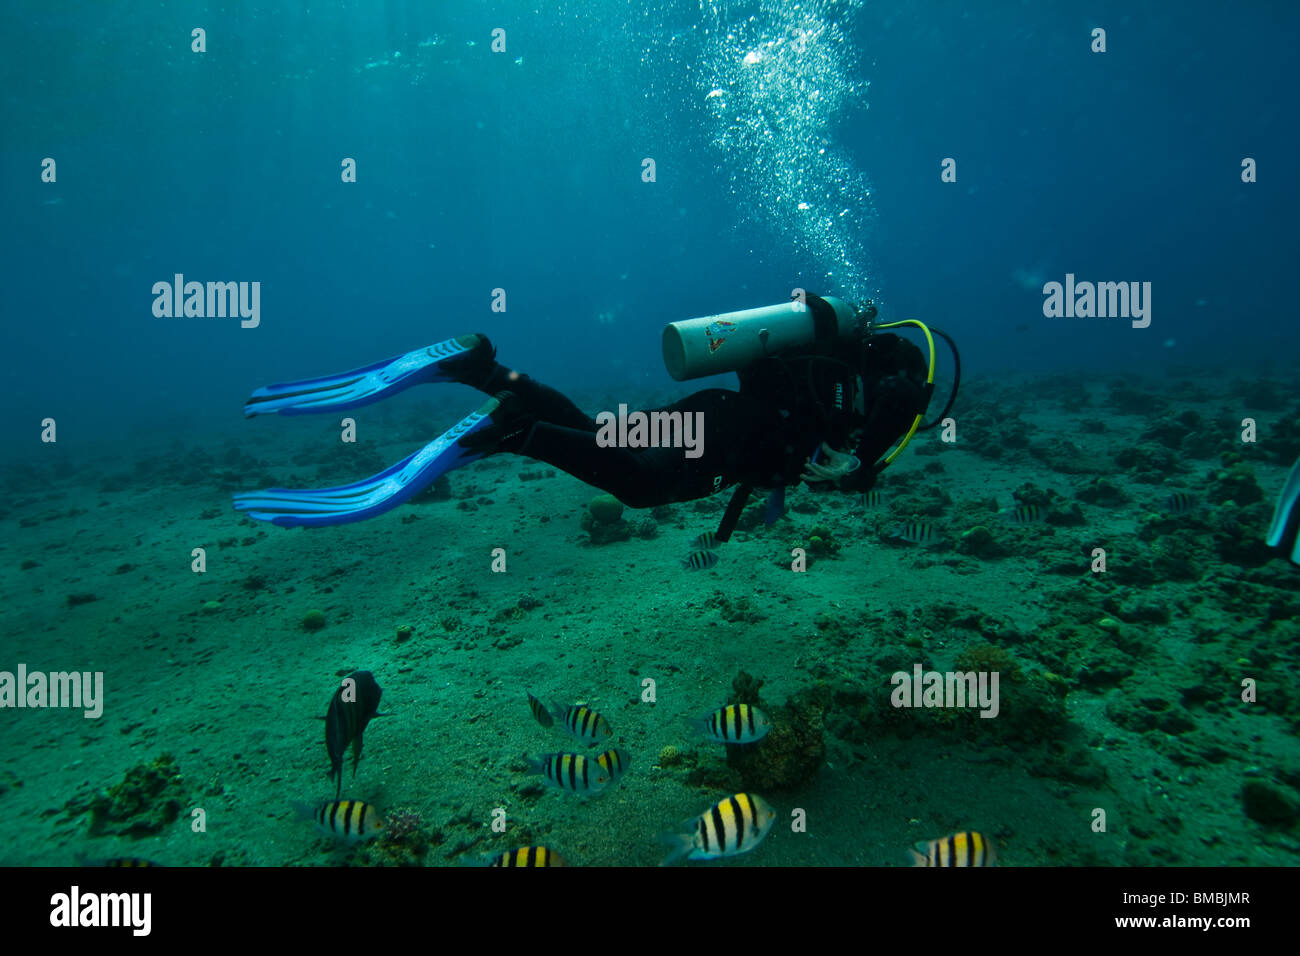 Male diver, shalow waters and reef fishes - Stock Image